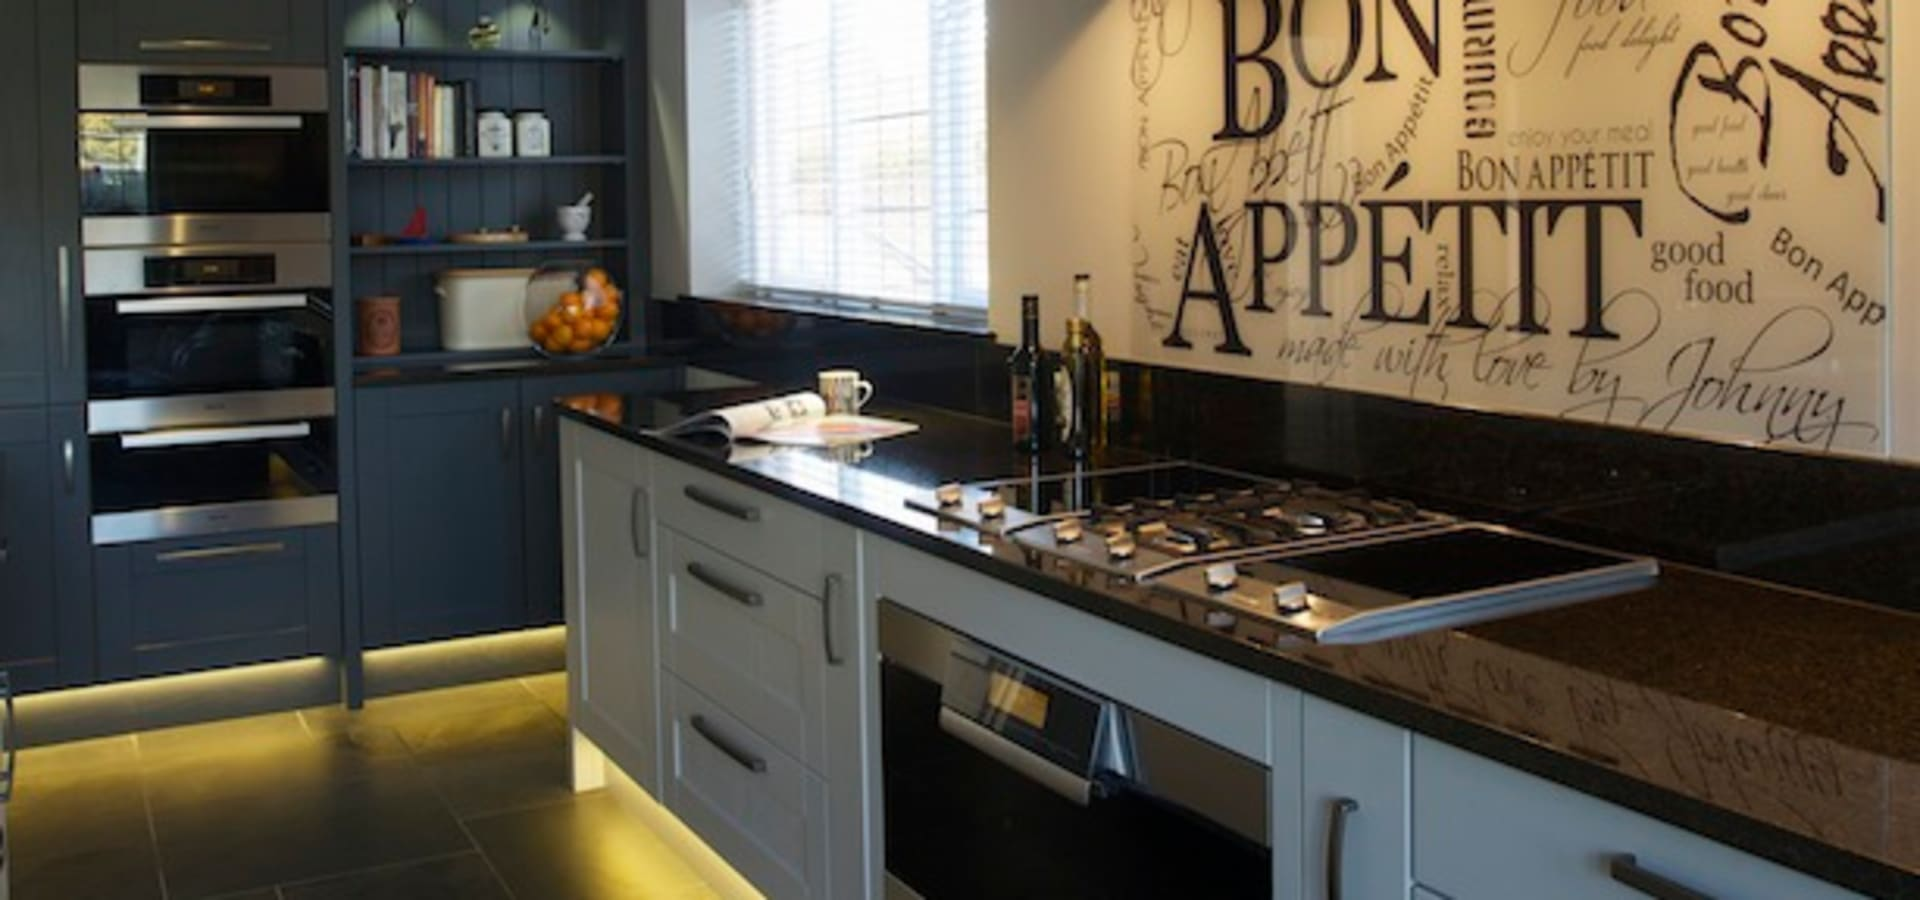 Interior design and sourcing knightsbridge london by for C kitchens ltd swanage